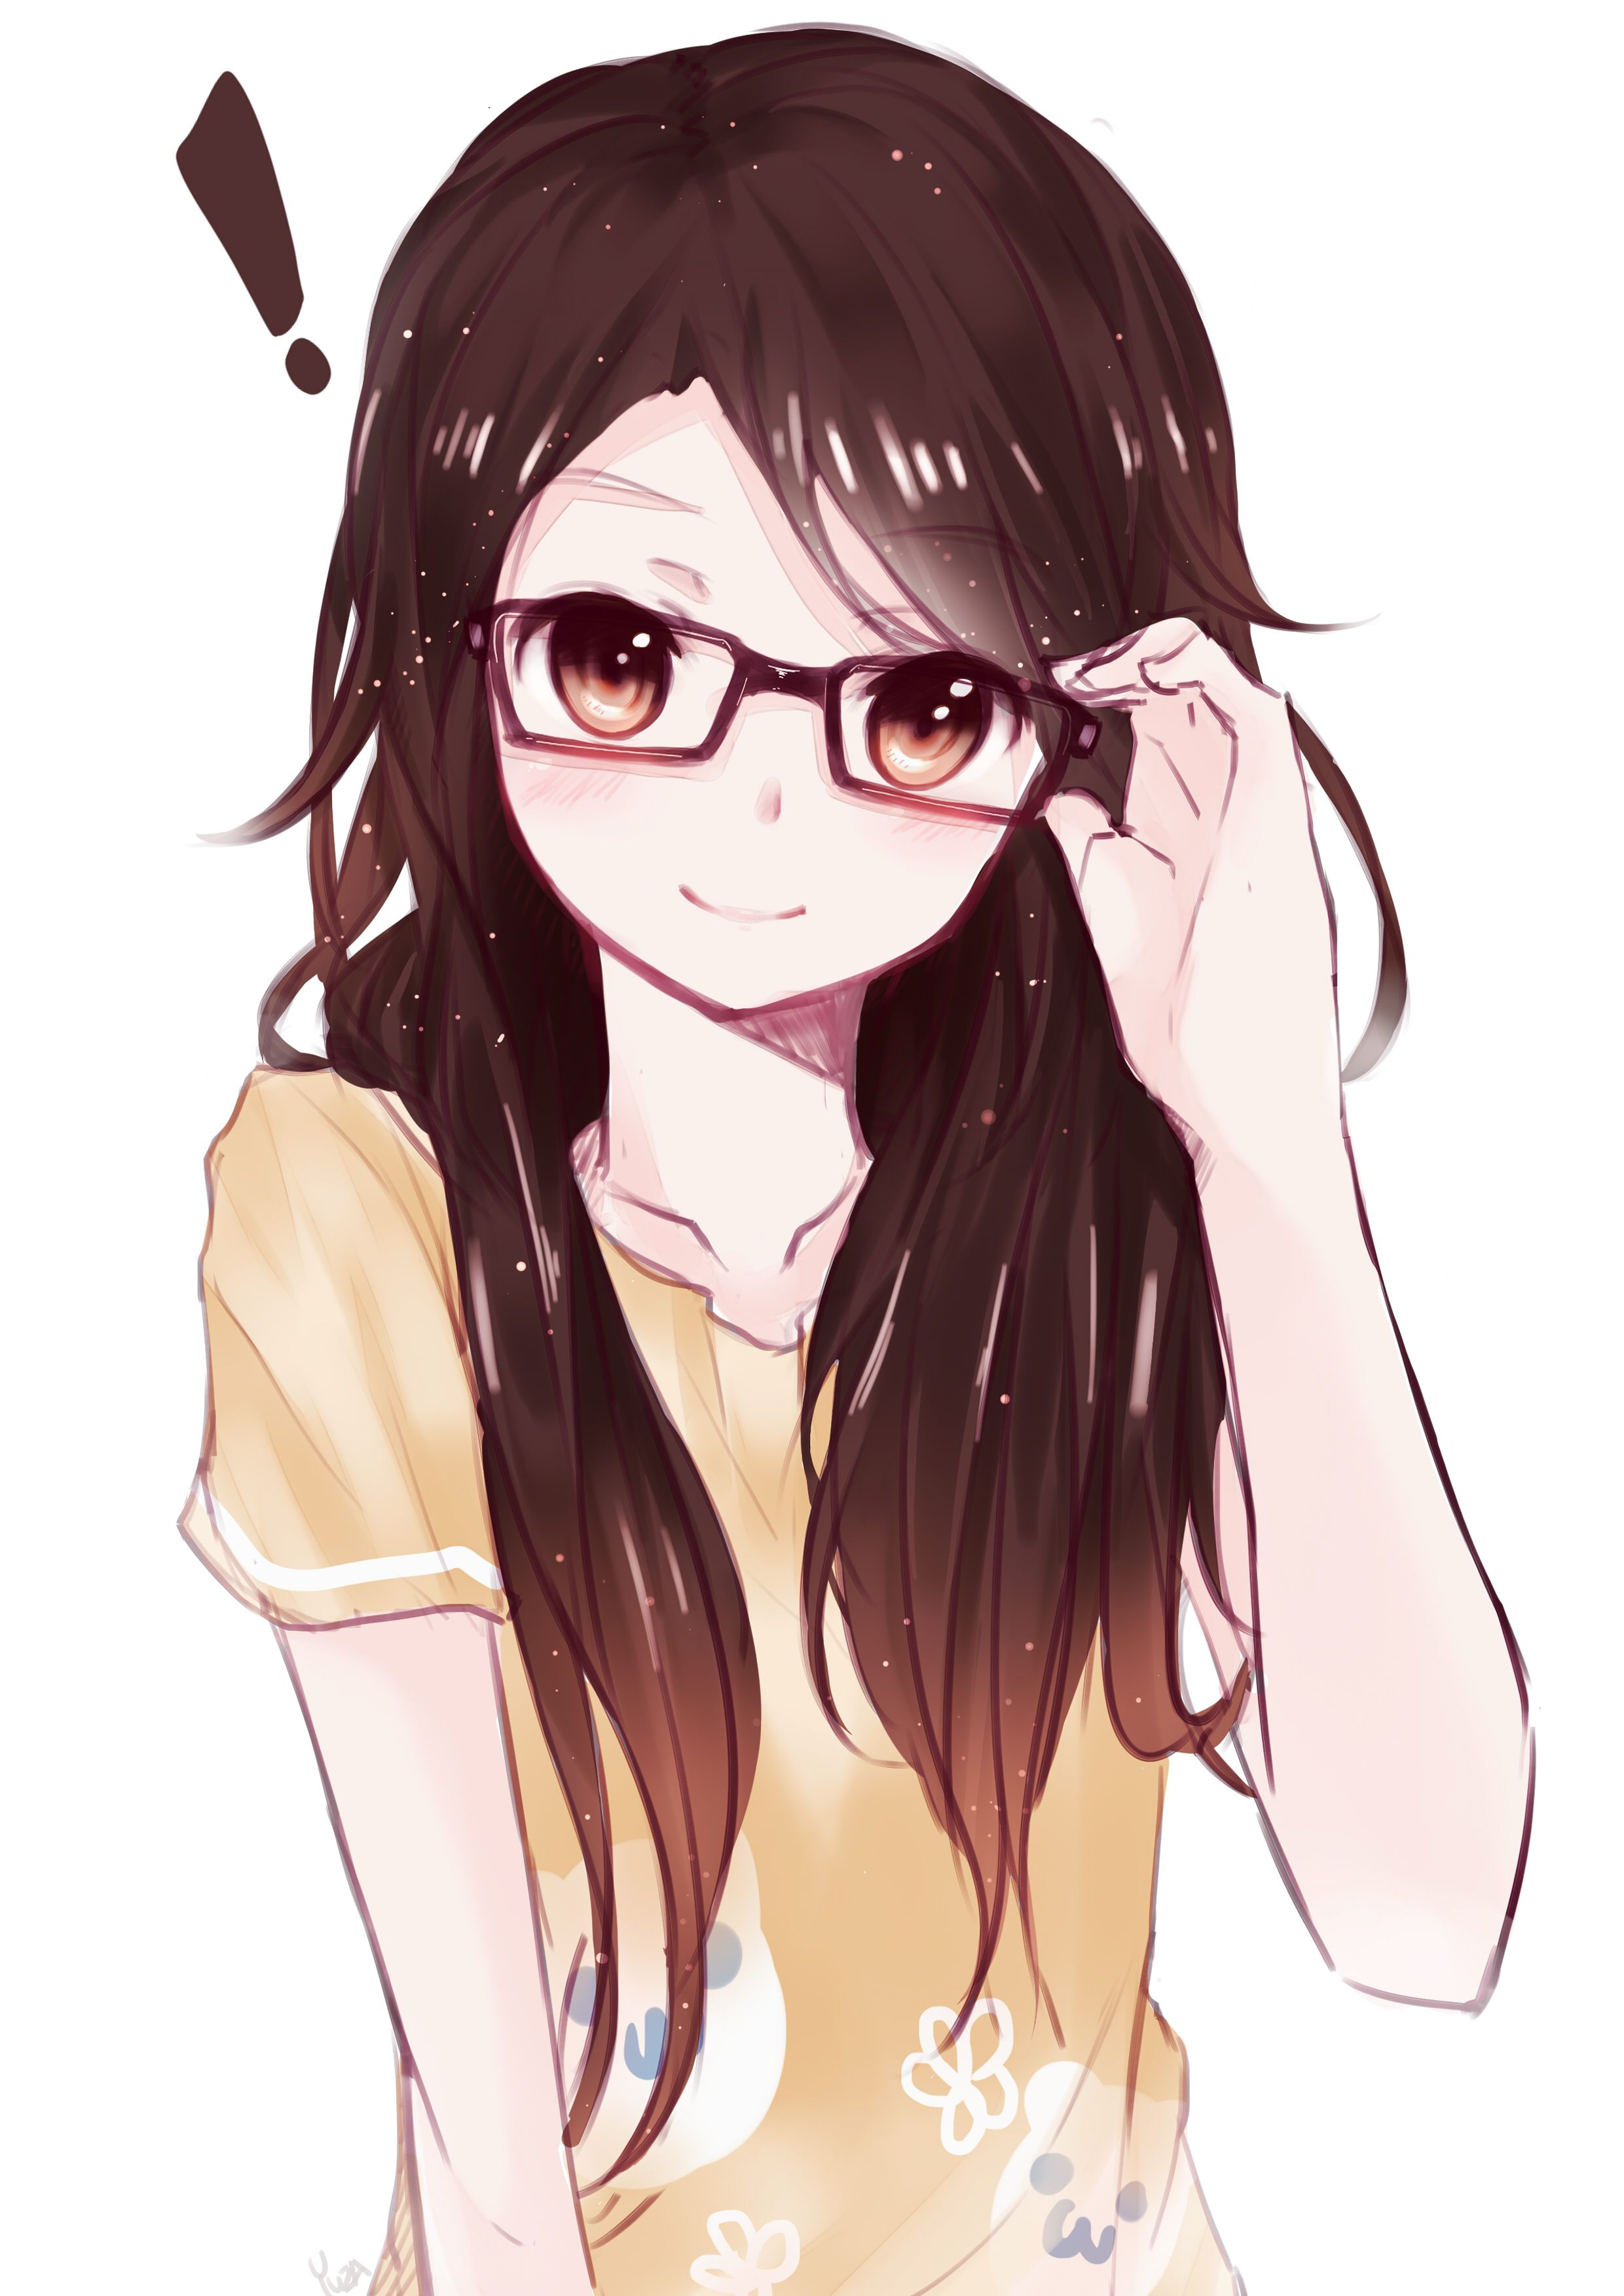 Anime Girl With Glasses Sketch